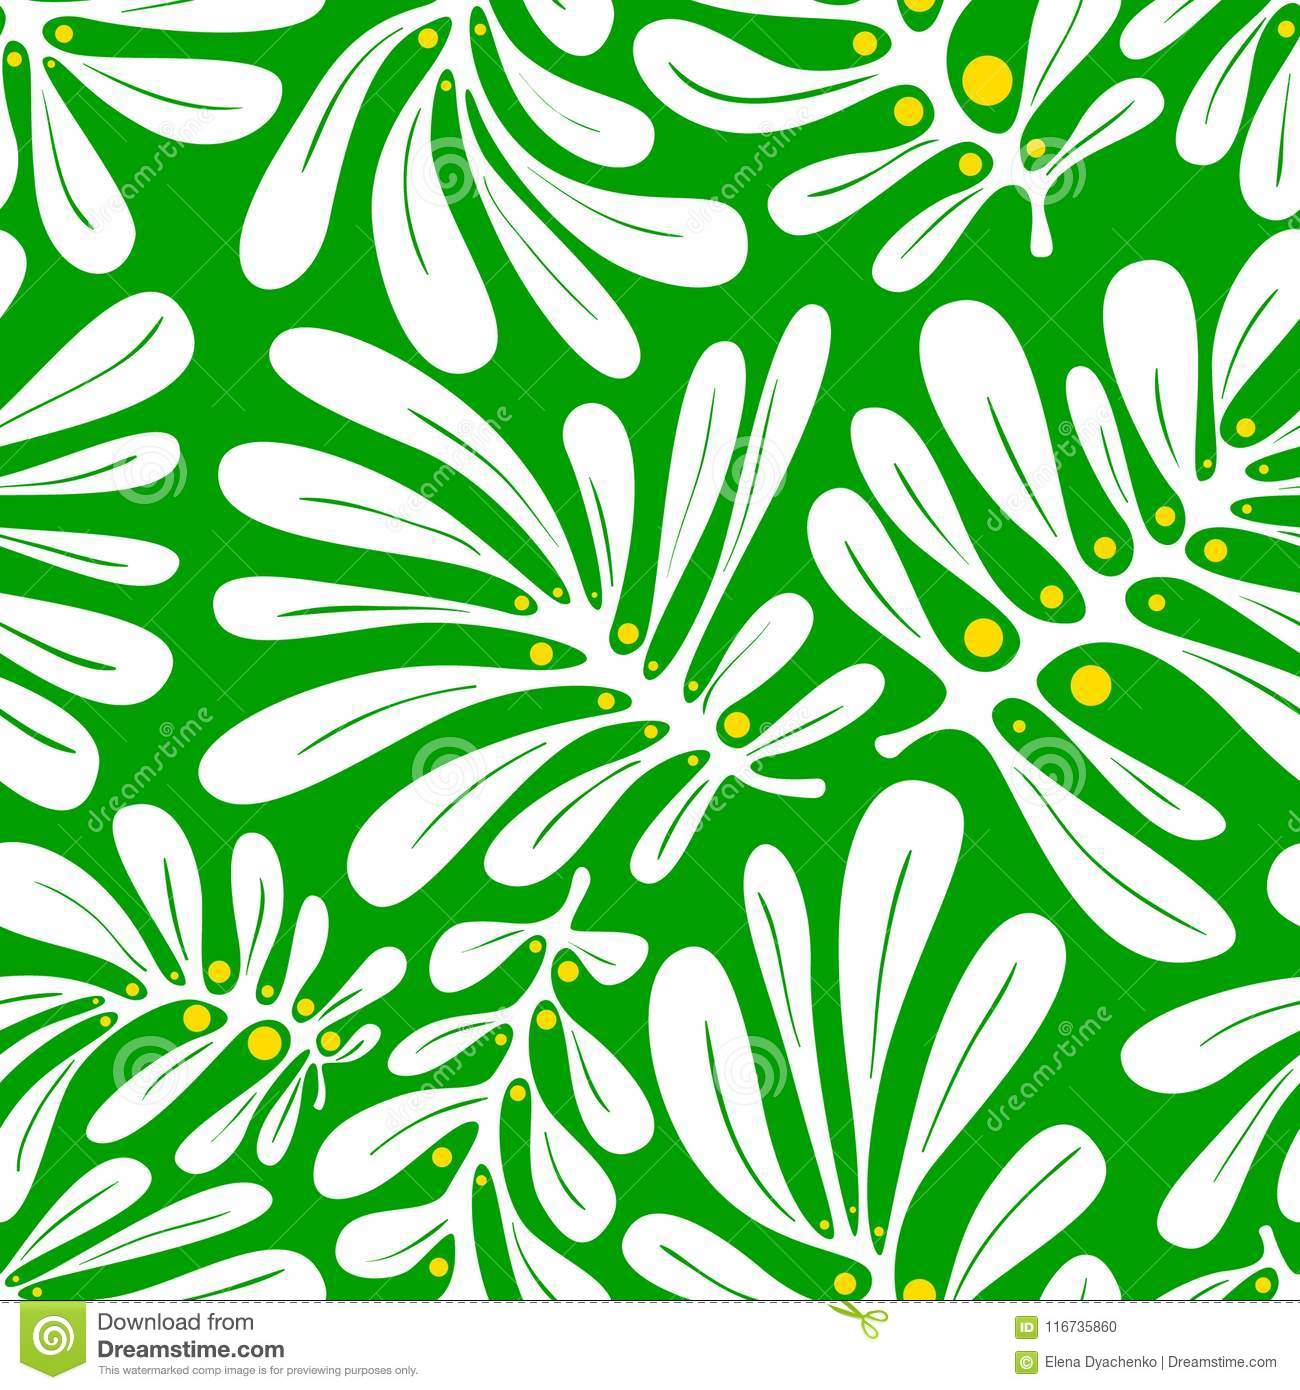 Background with palm leaves. Tropical seamless pattern with mons